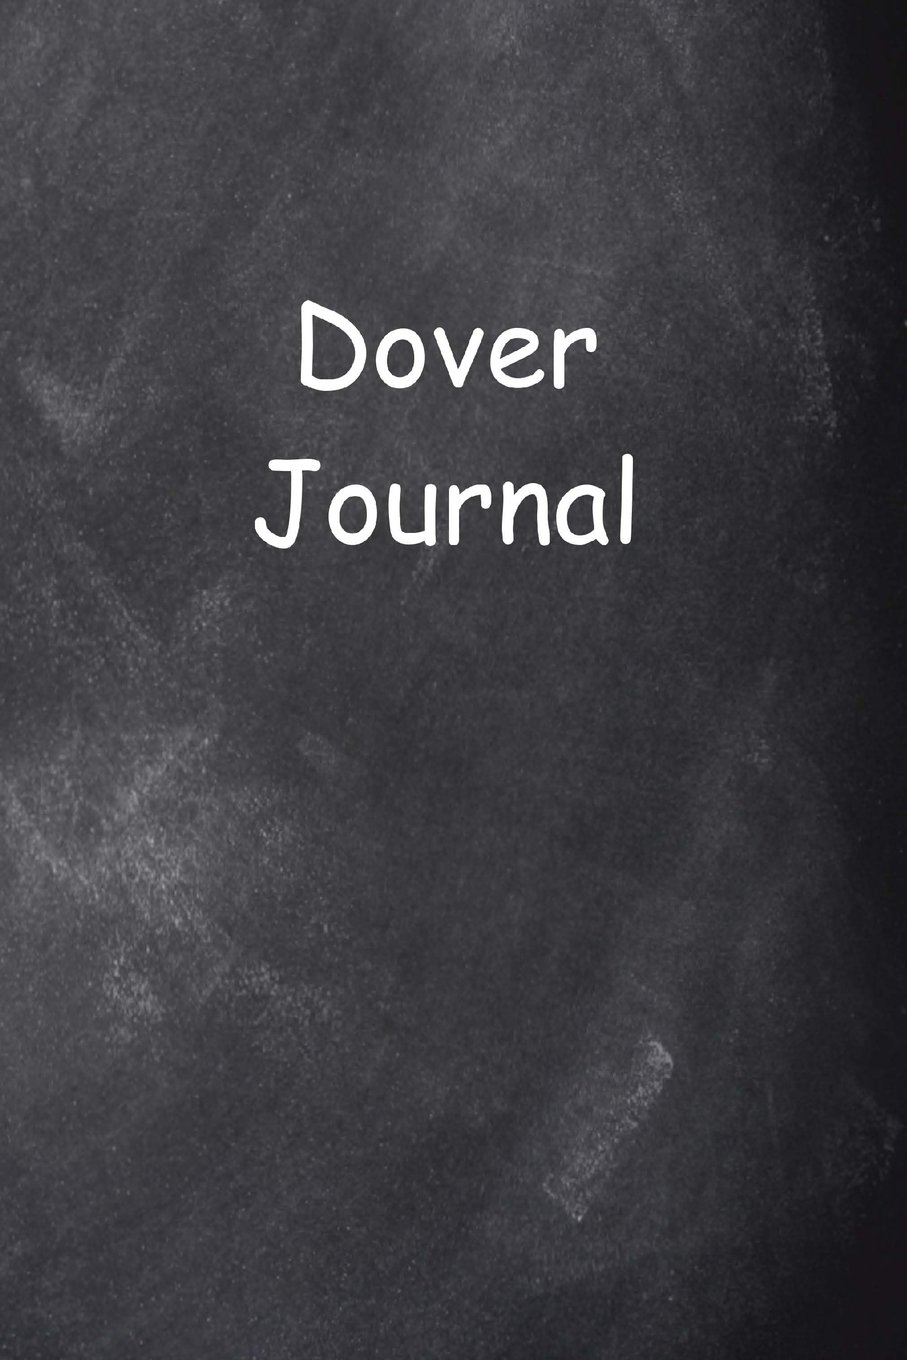 Dover Journal Chalkboard Design: (Notebook, Diary, Blank Book) (Travel Journals Notebooks Diaries) pdf